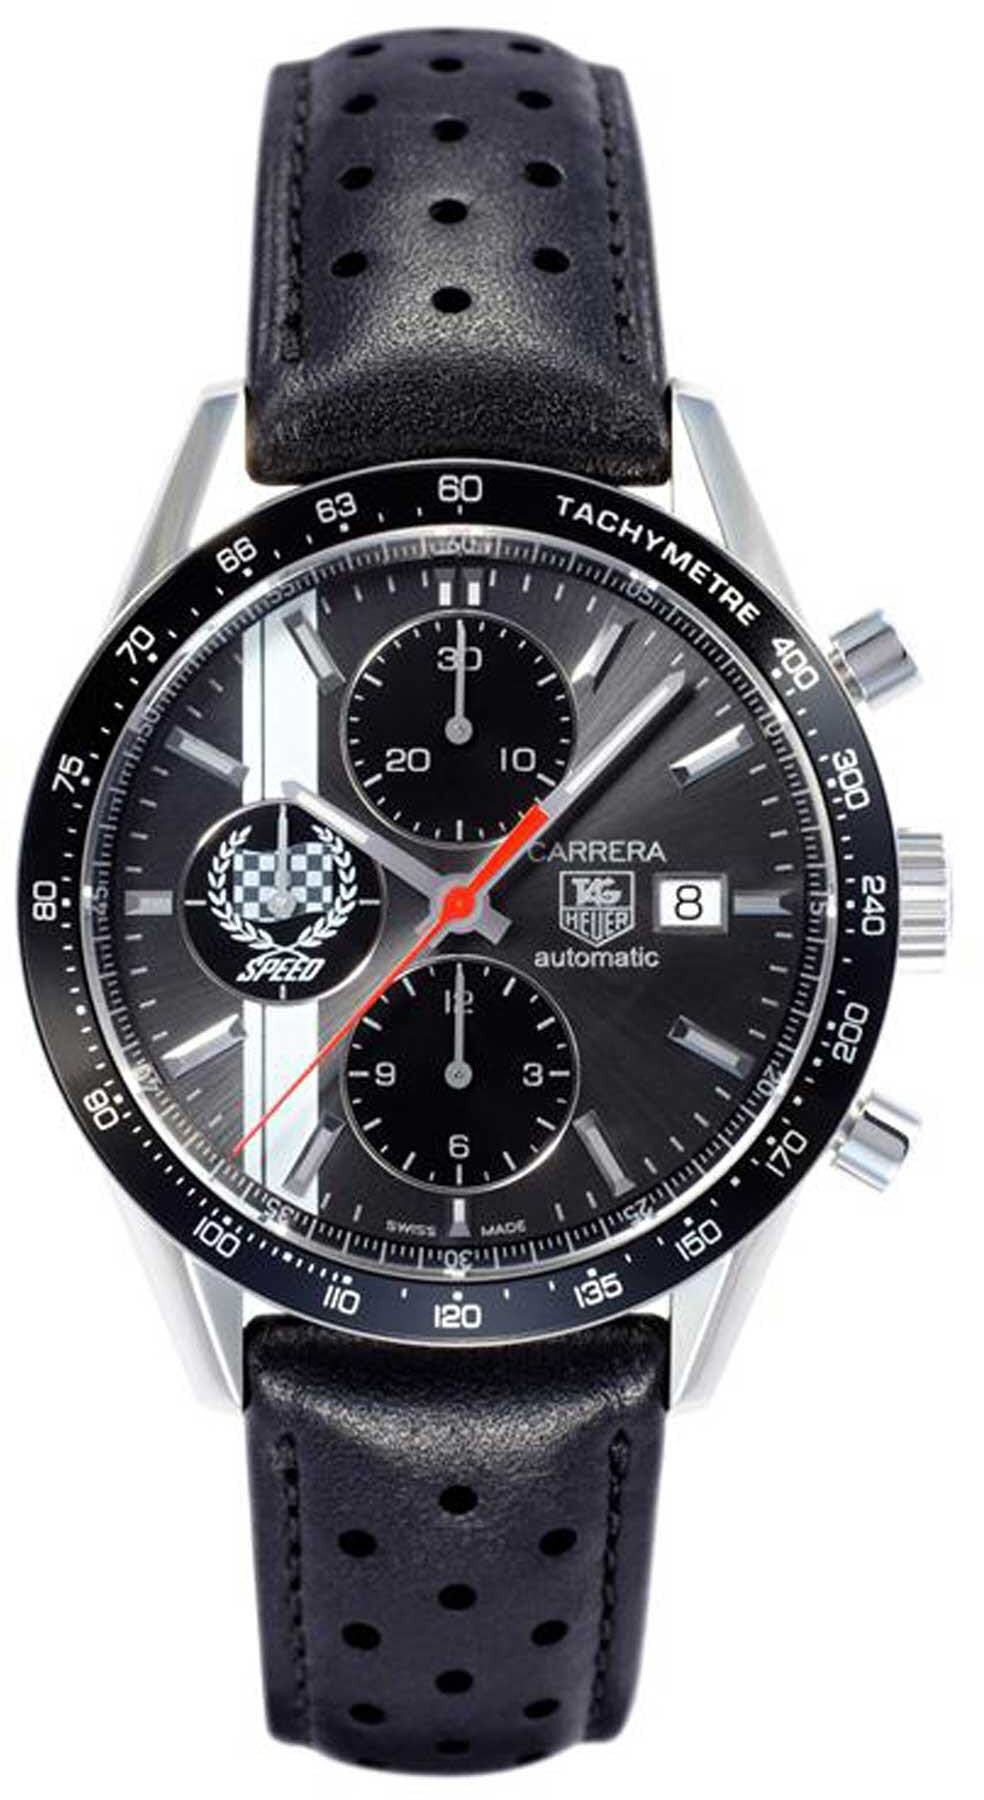 TAG Heuer Watch Carrera Goodwood FOS Limited Edition D